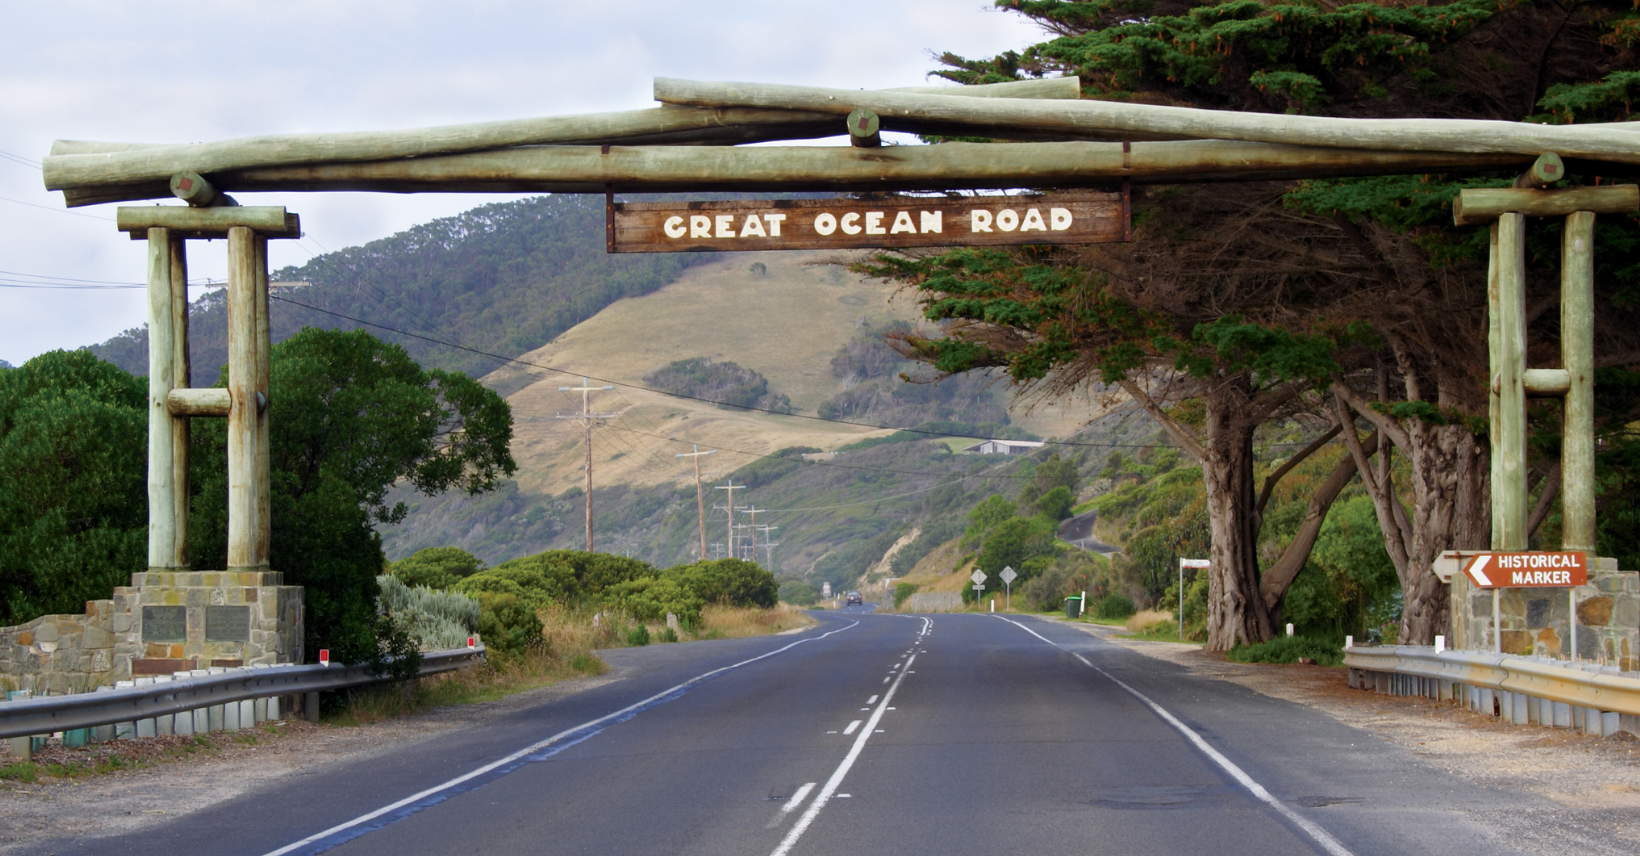 PERCORRENDO                      LA GREAT OCEAN ROAD